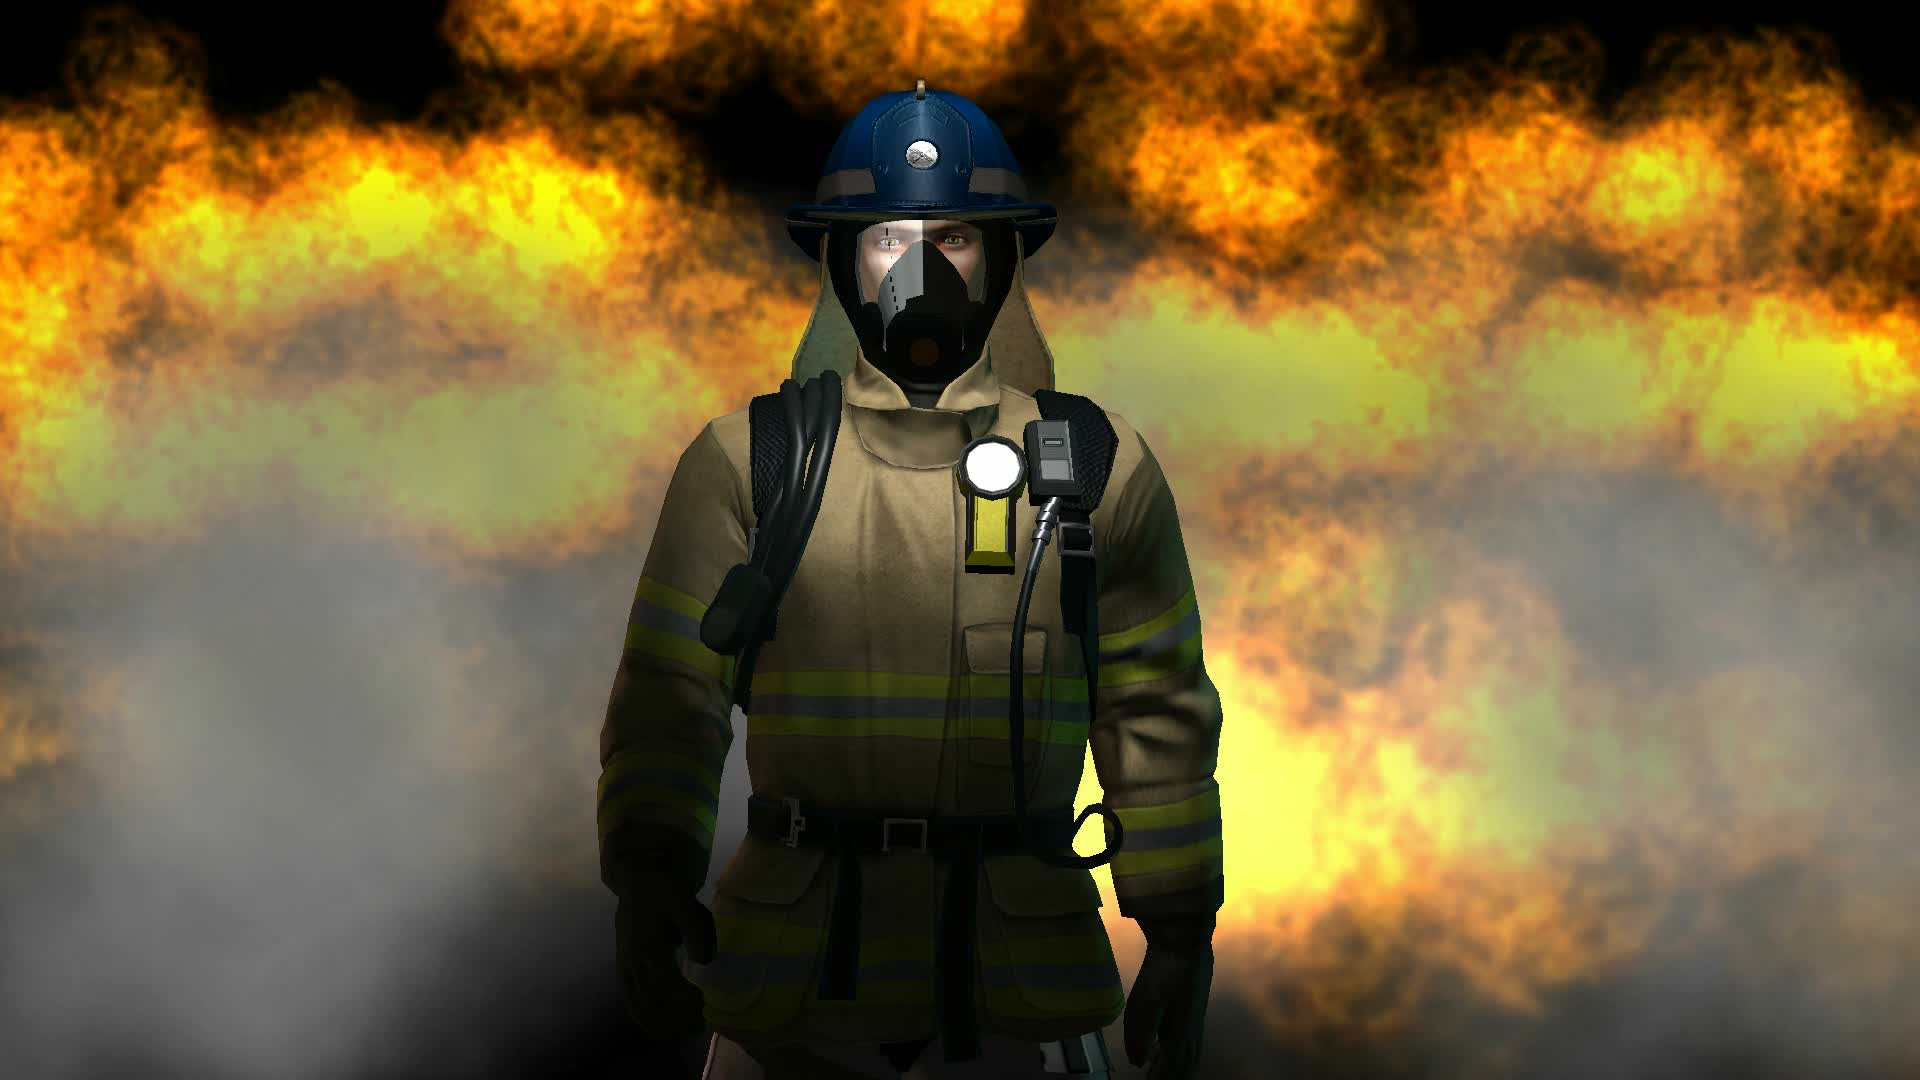 Fireman Wallpapers Pack Download V.15 - BsnSCB Graphics